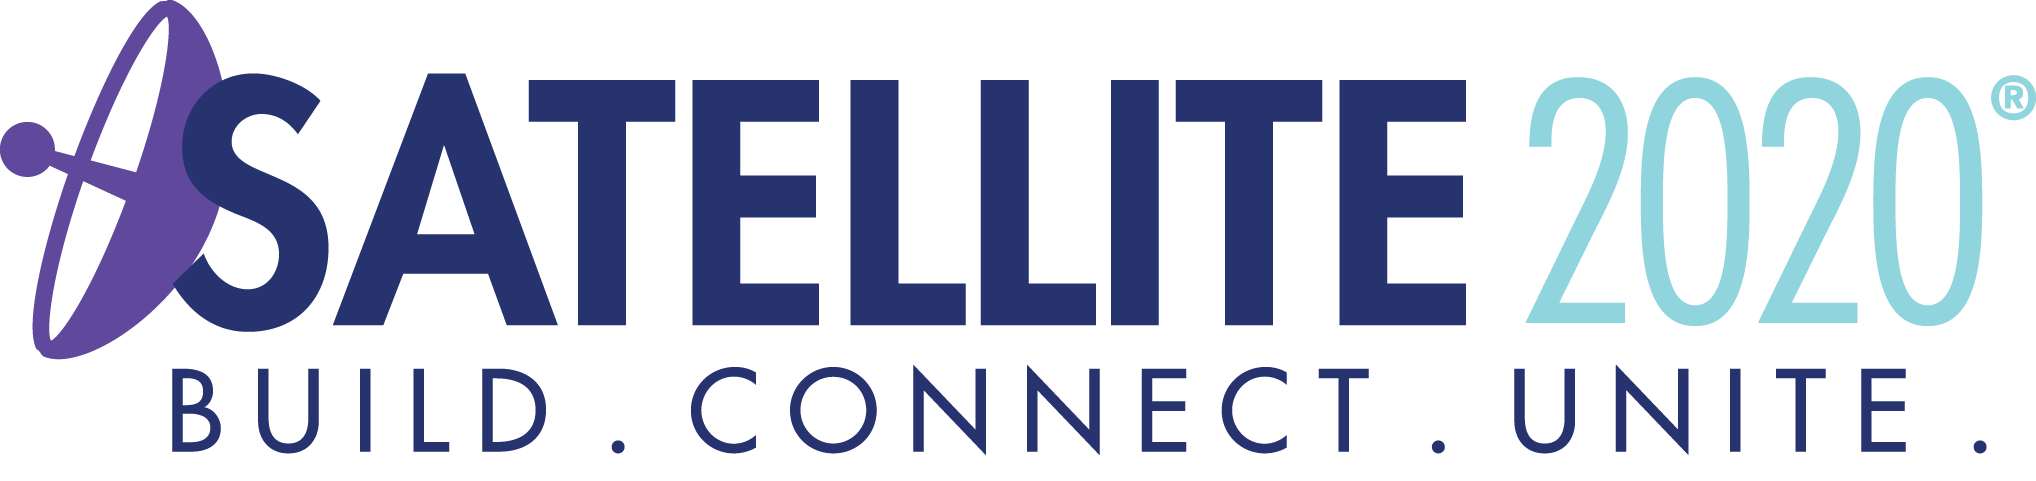 Satellite 2020_logo